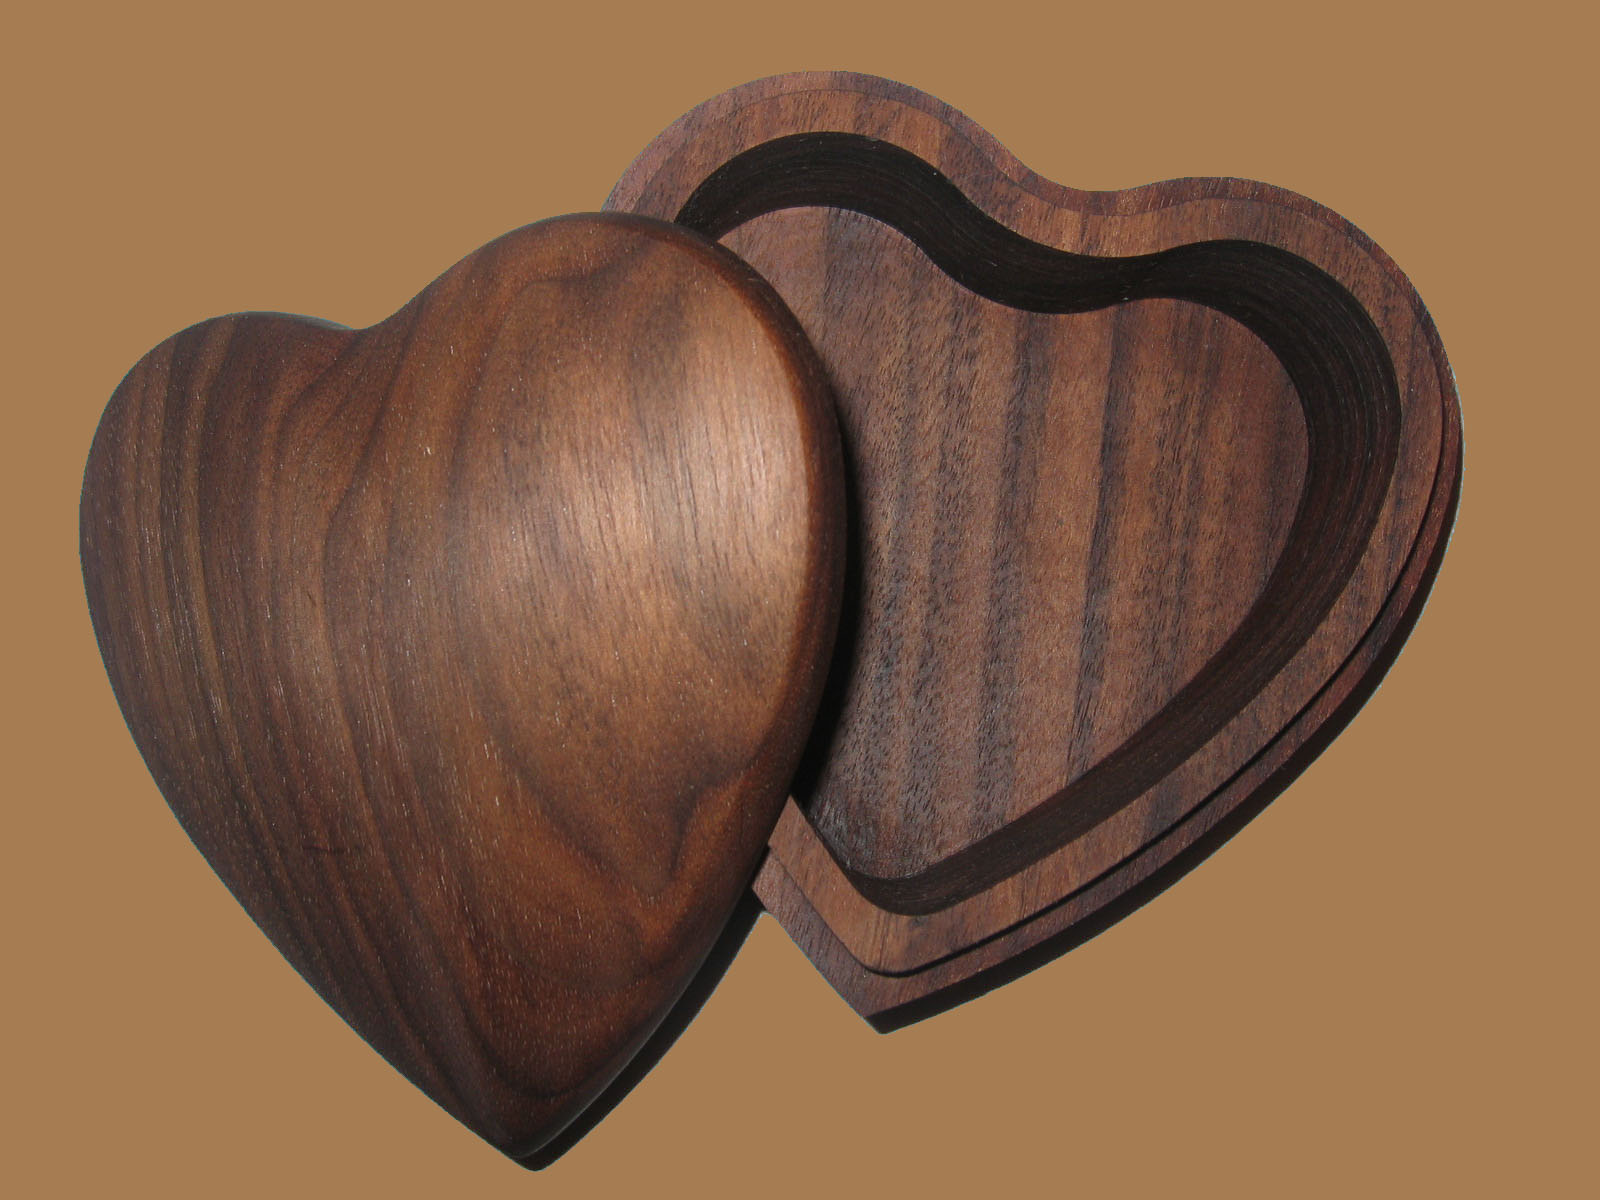 Wooden Heart Box Wooden Heart Box Products